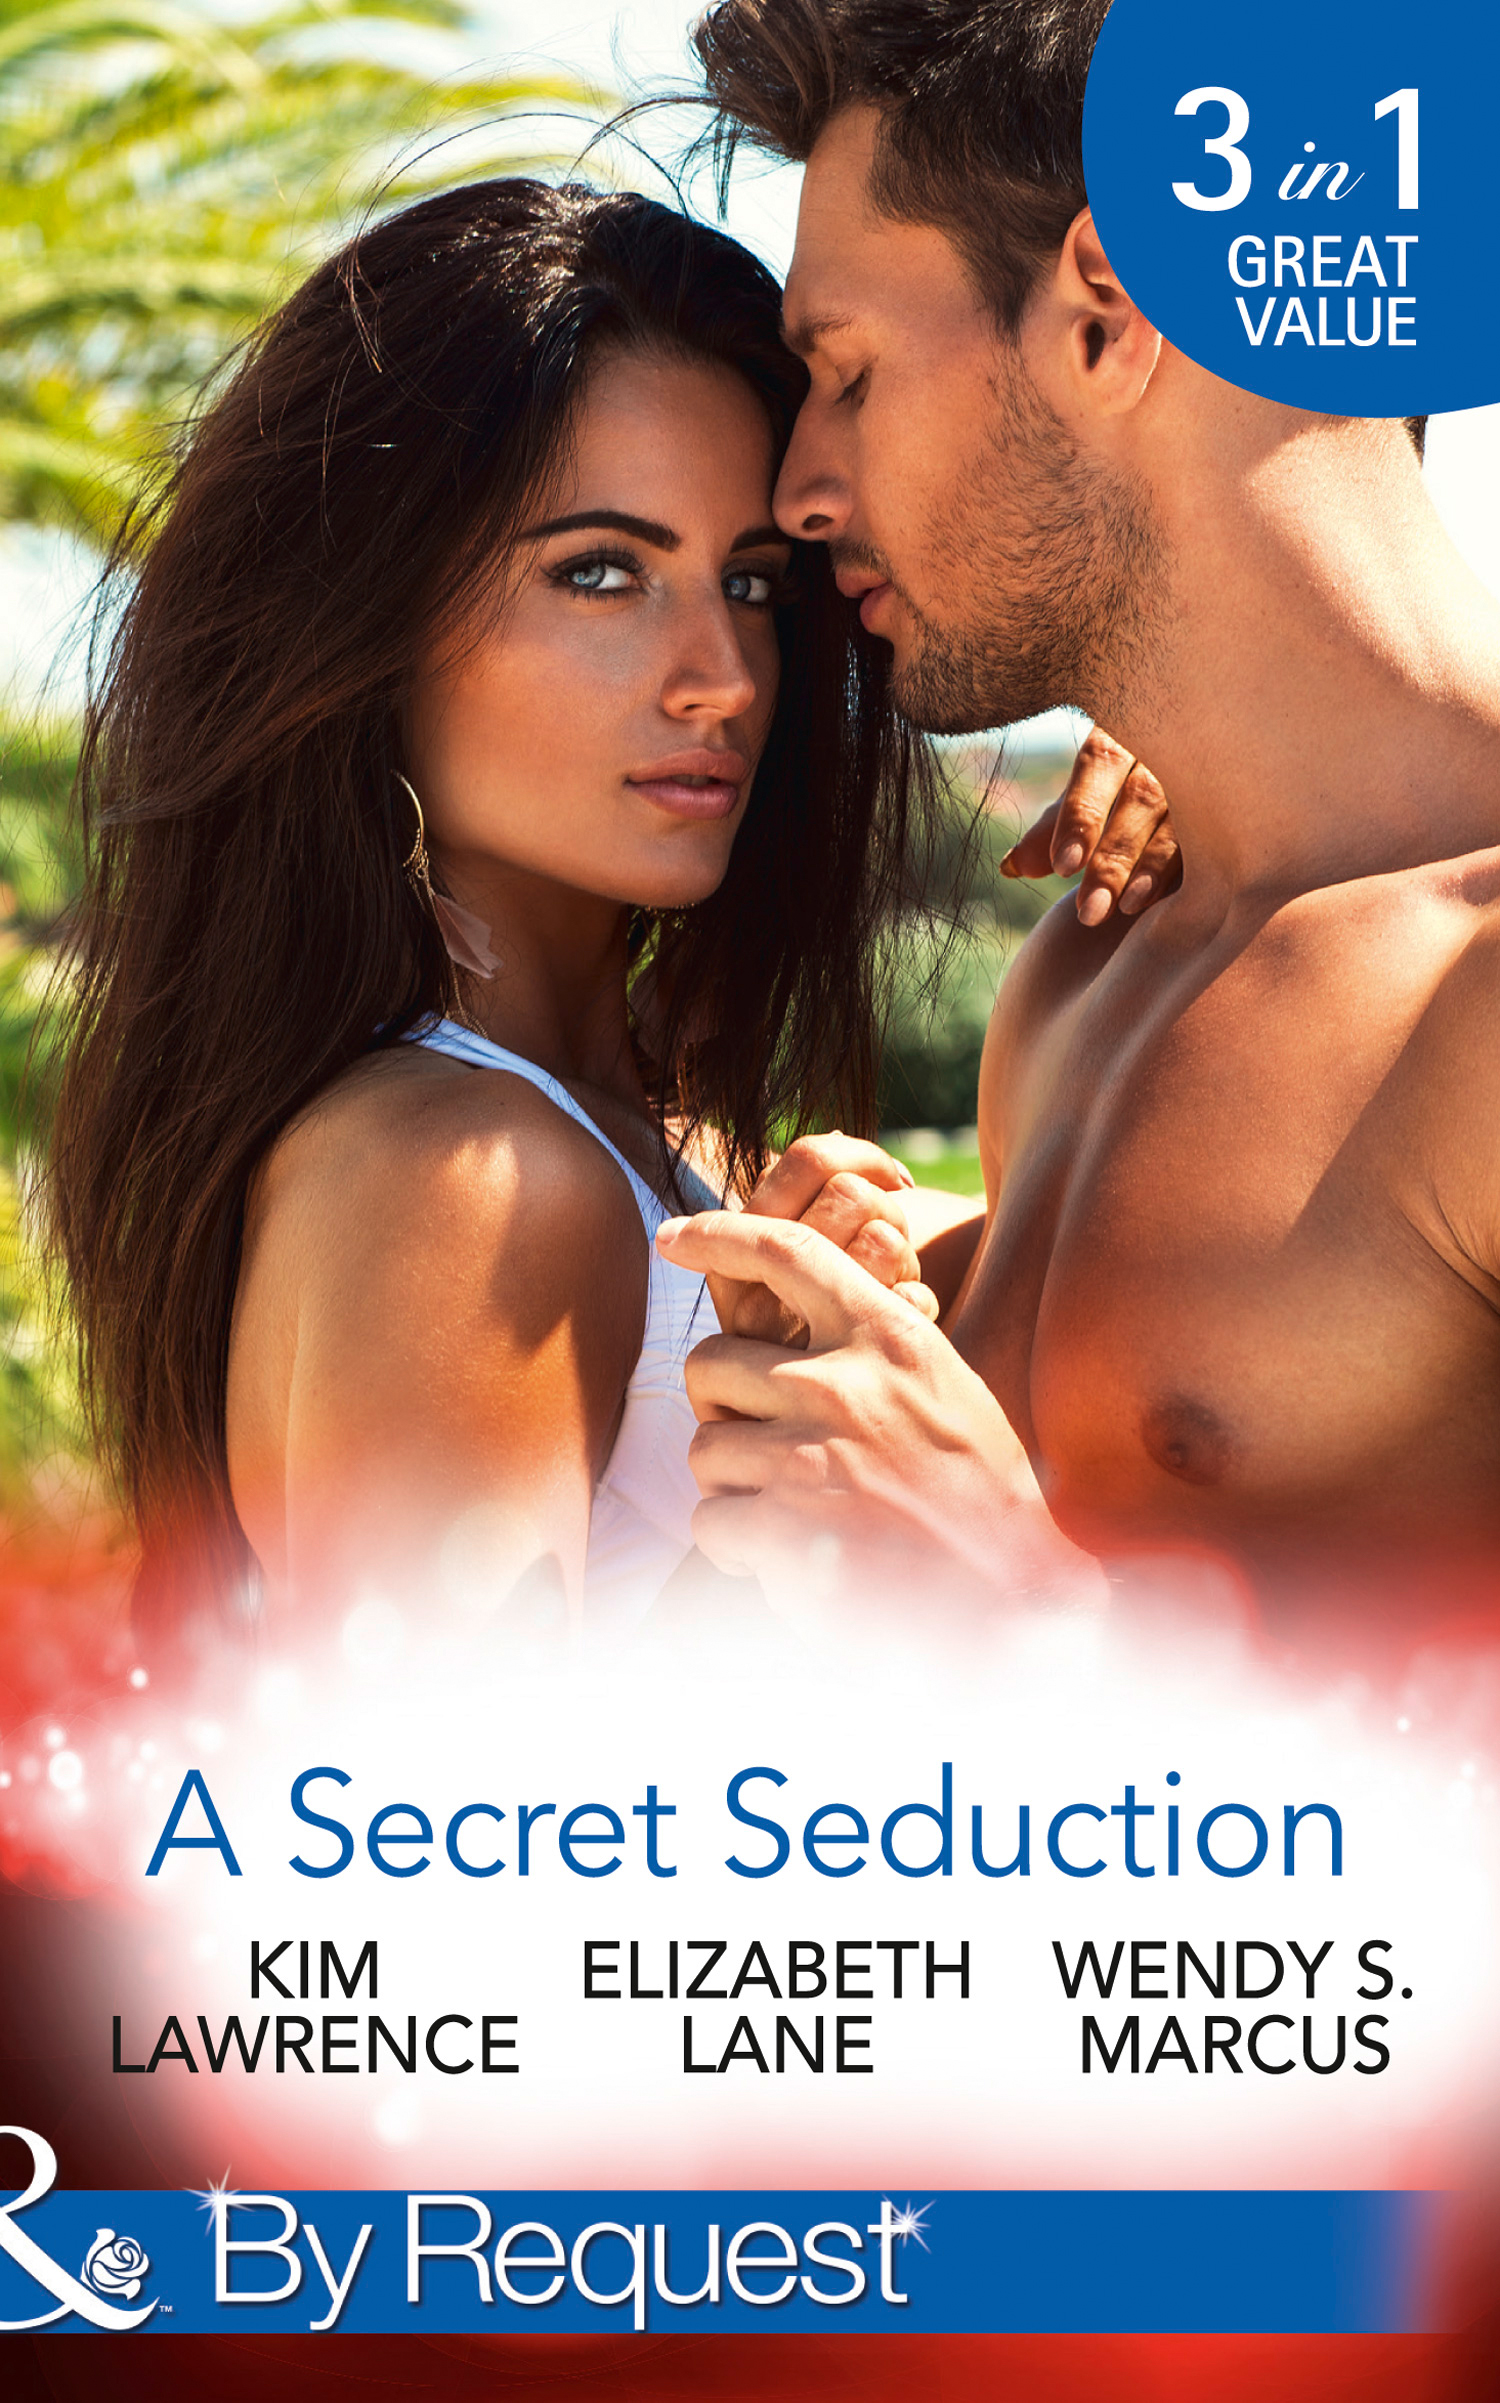 A Secret Seduction